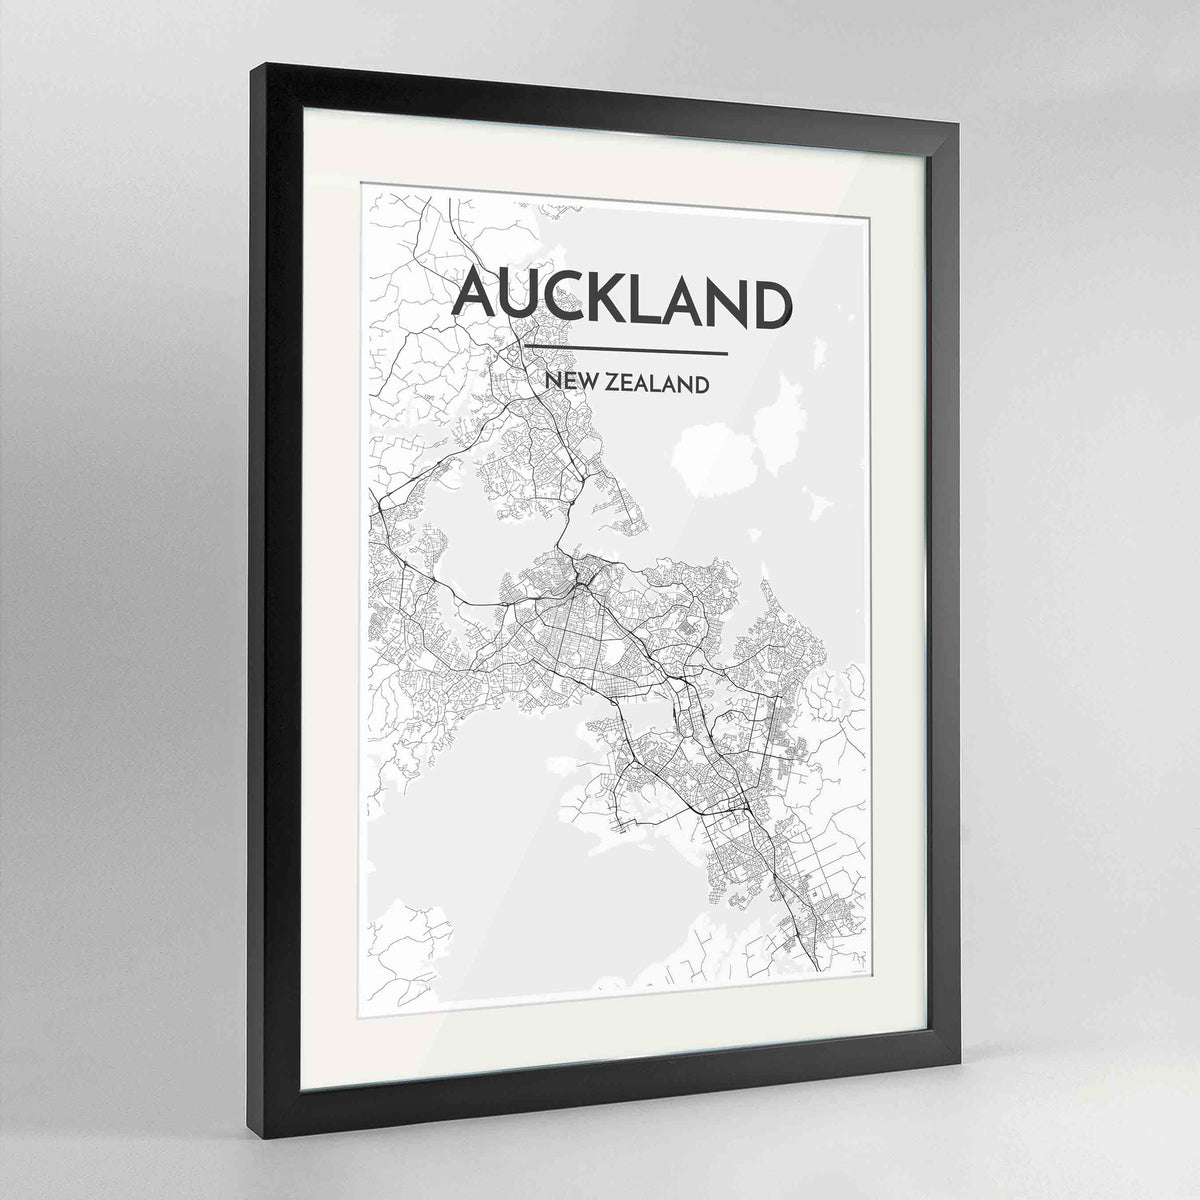 "Framed Auckland Map Art Print 24x36"" Contemporary Black frame Point Two Design Group"